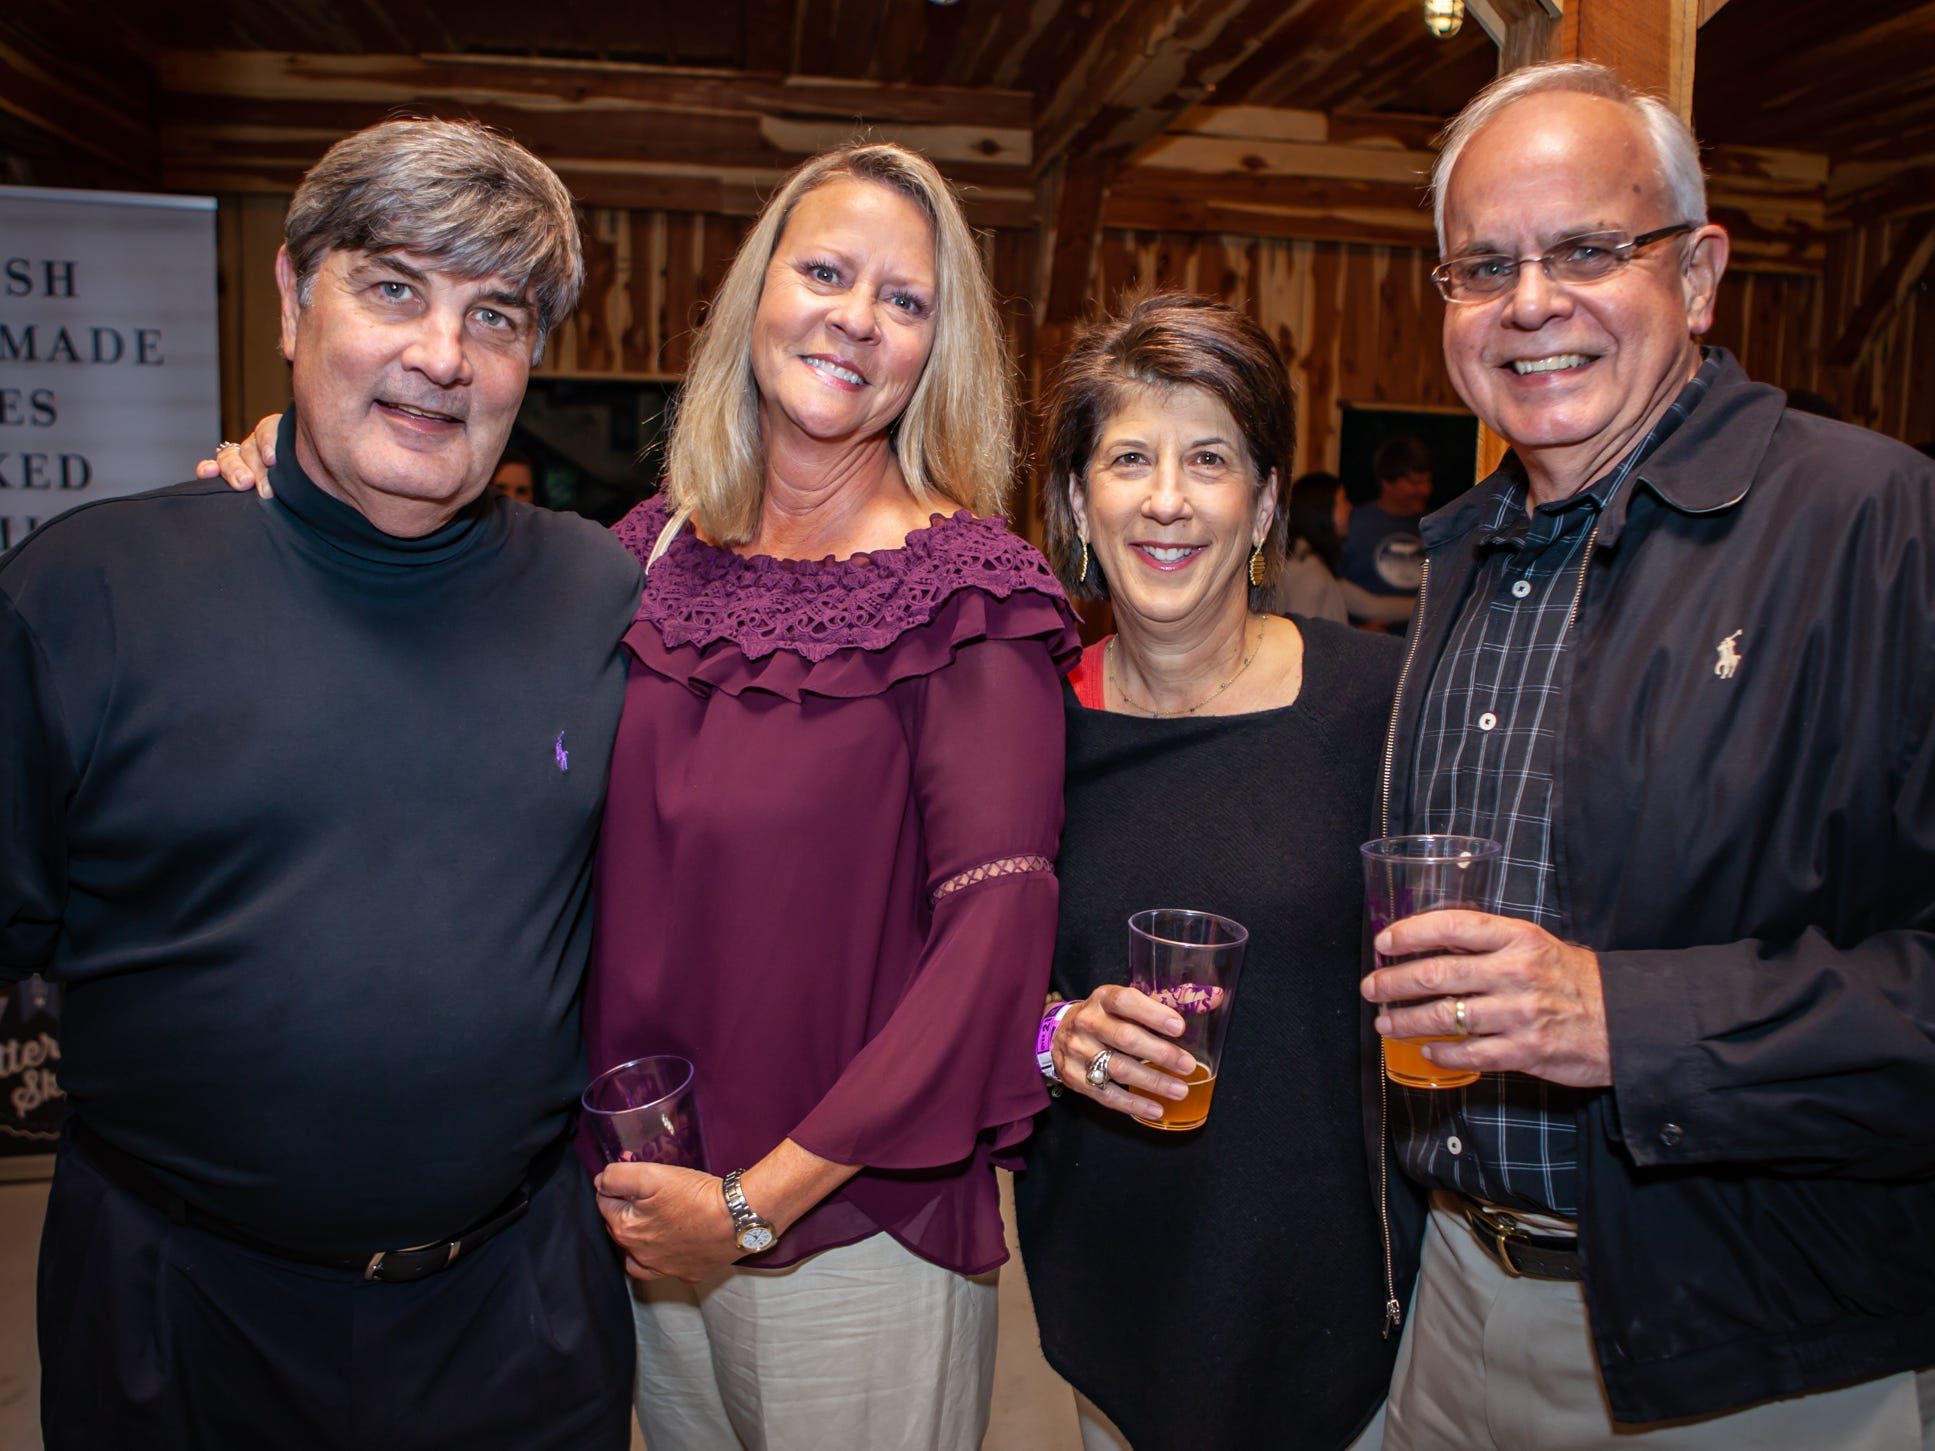 Boots and Brews: Rick Mansfield, Lori Price, and Mary and Mike Francis